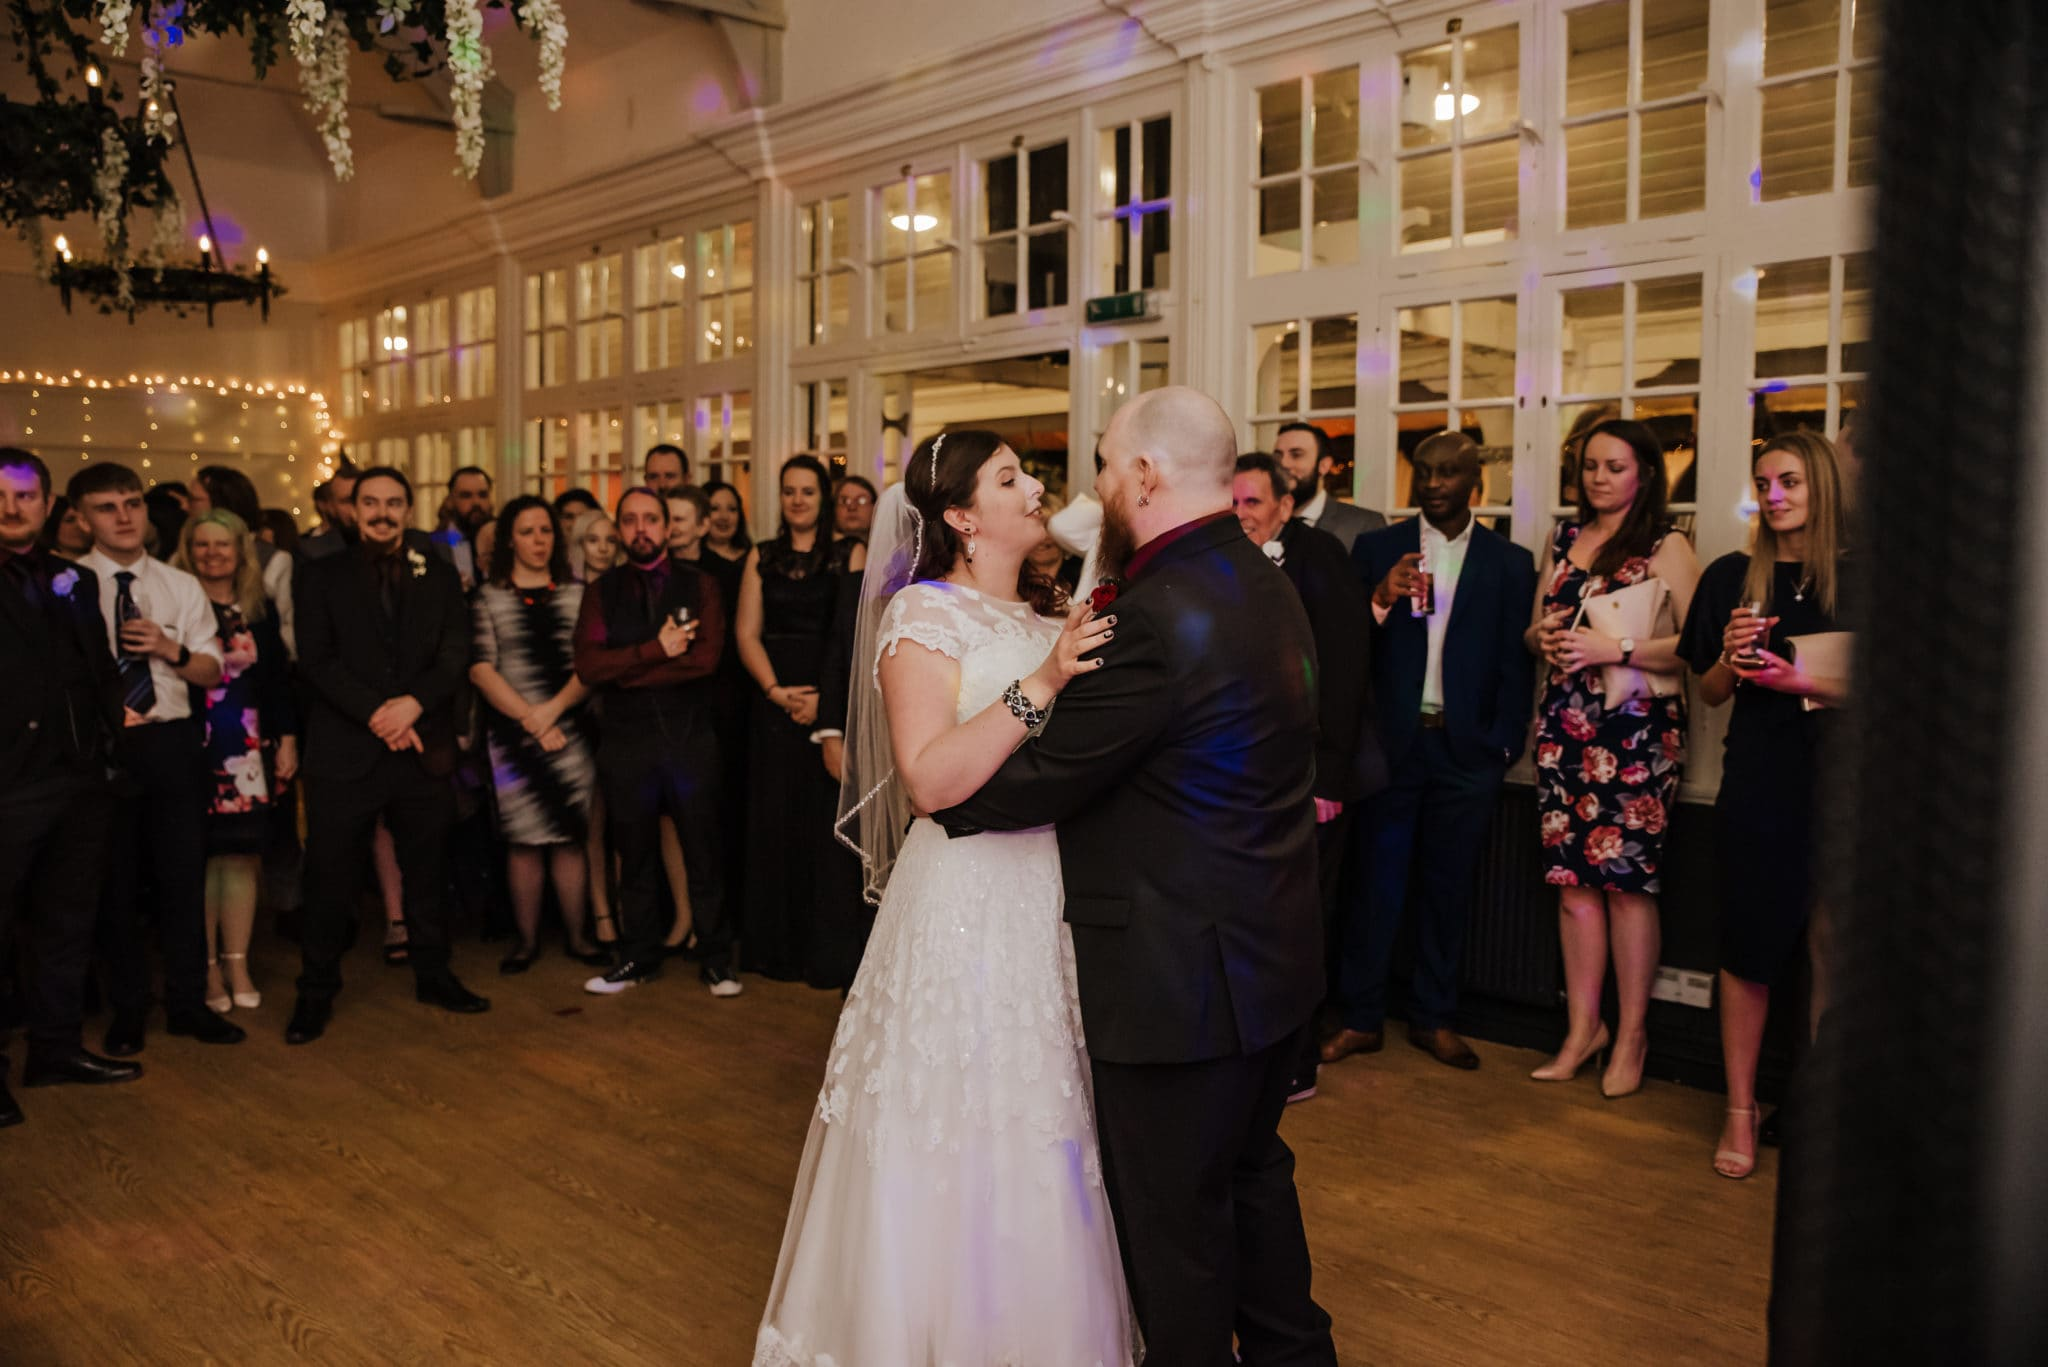 Dancing couple at the wedding reception Shenley cricket club , white wedding dress, black and red themed wedding